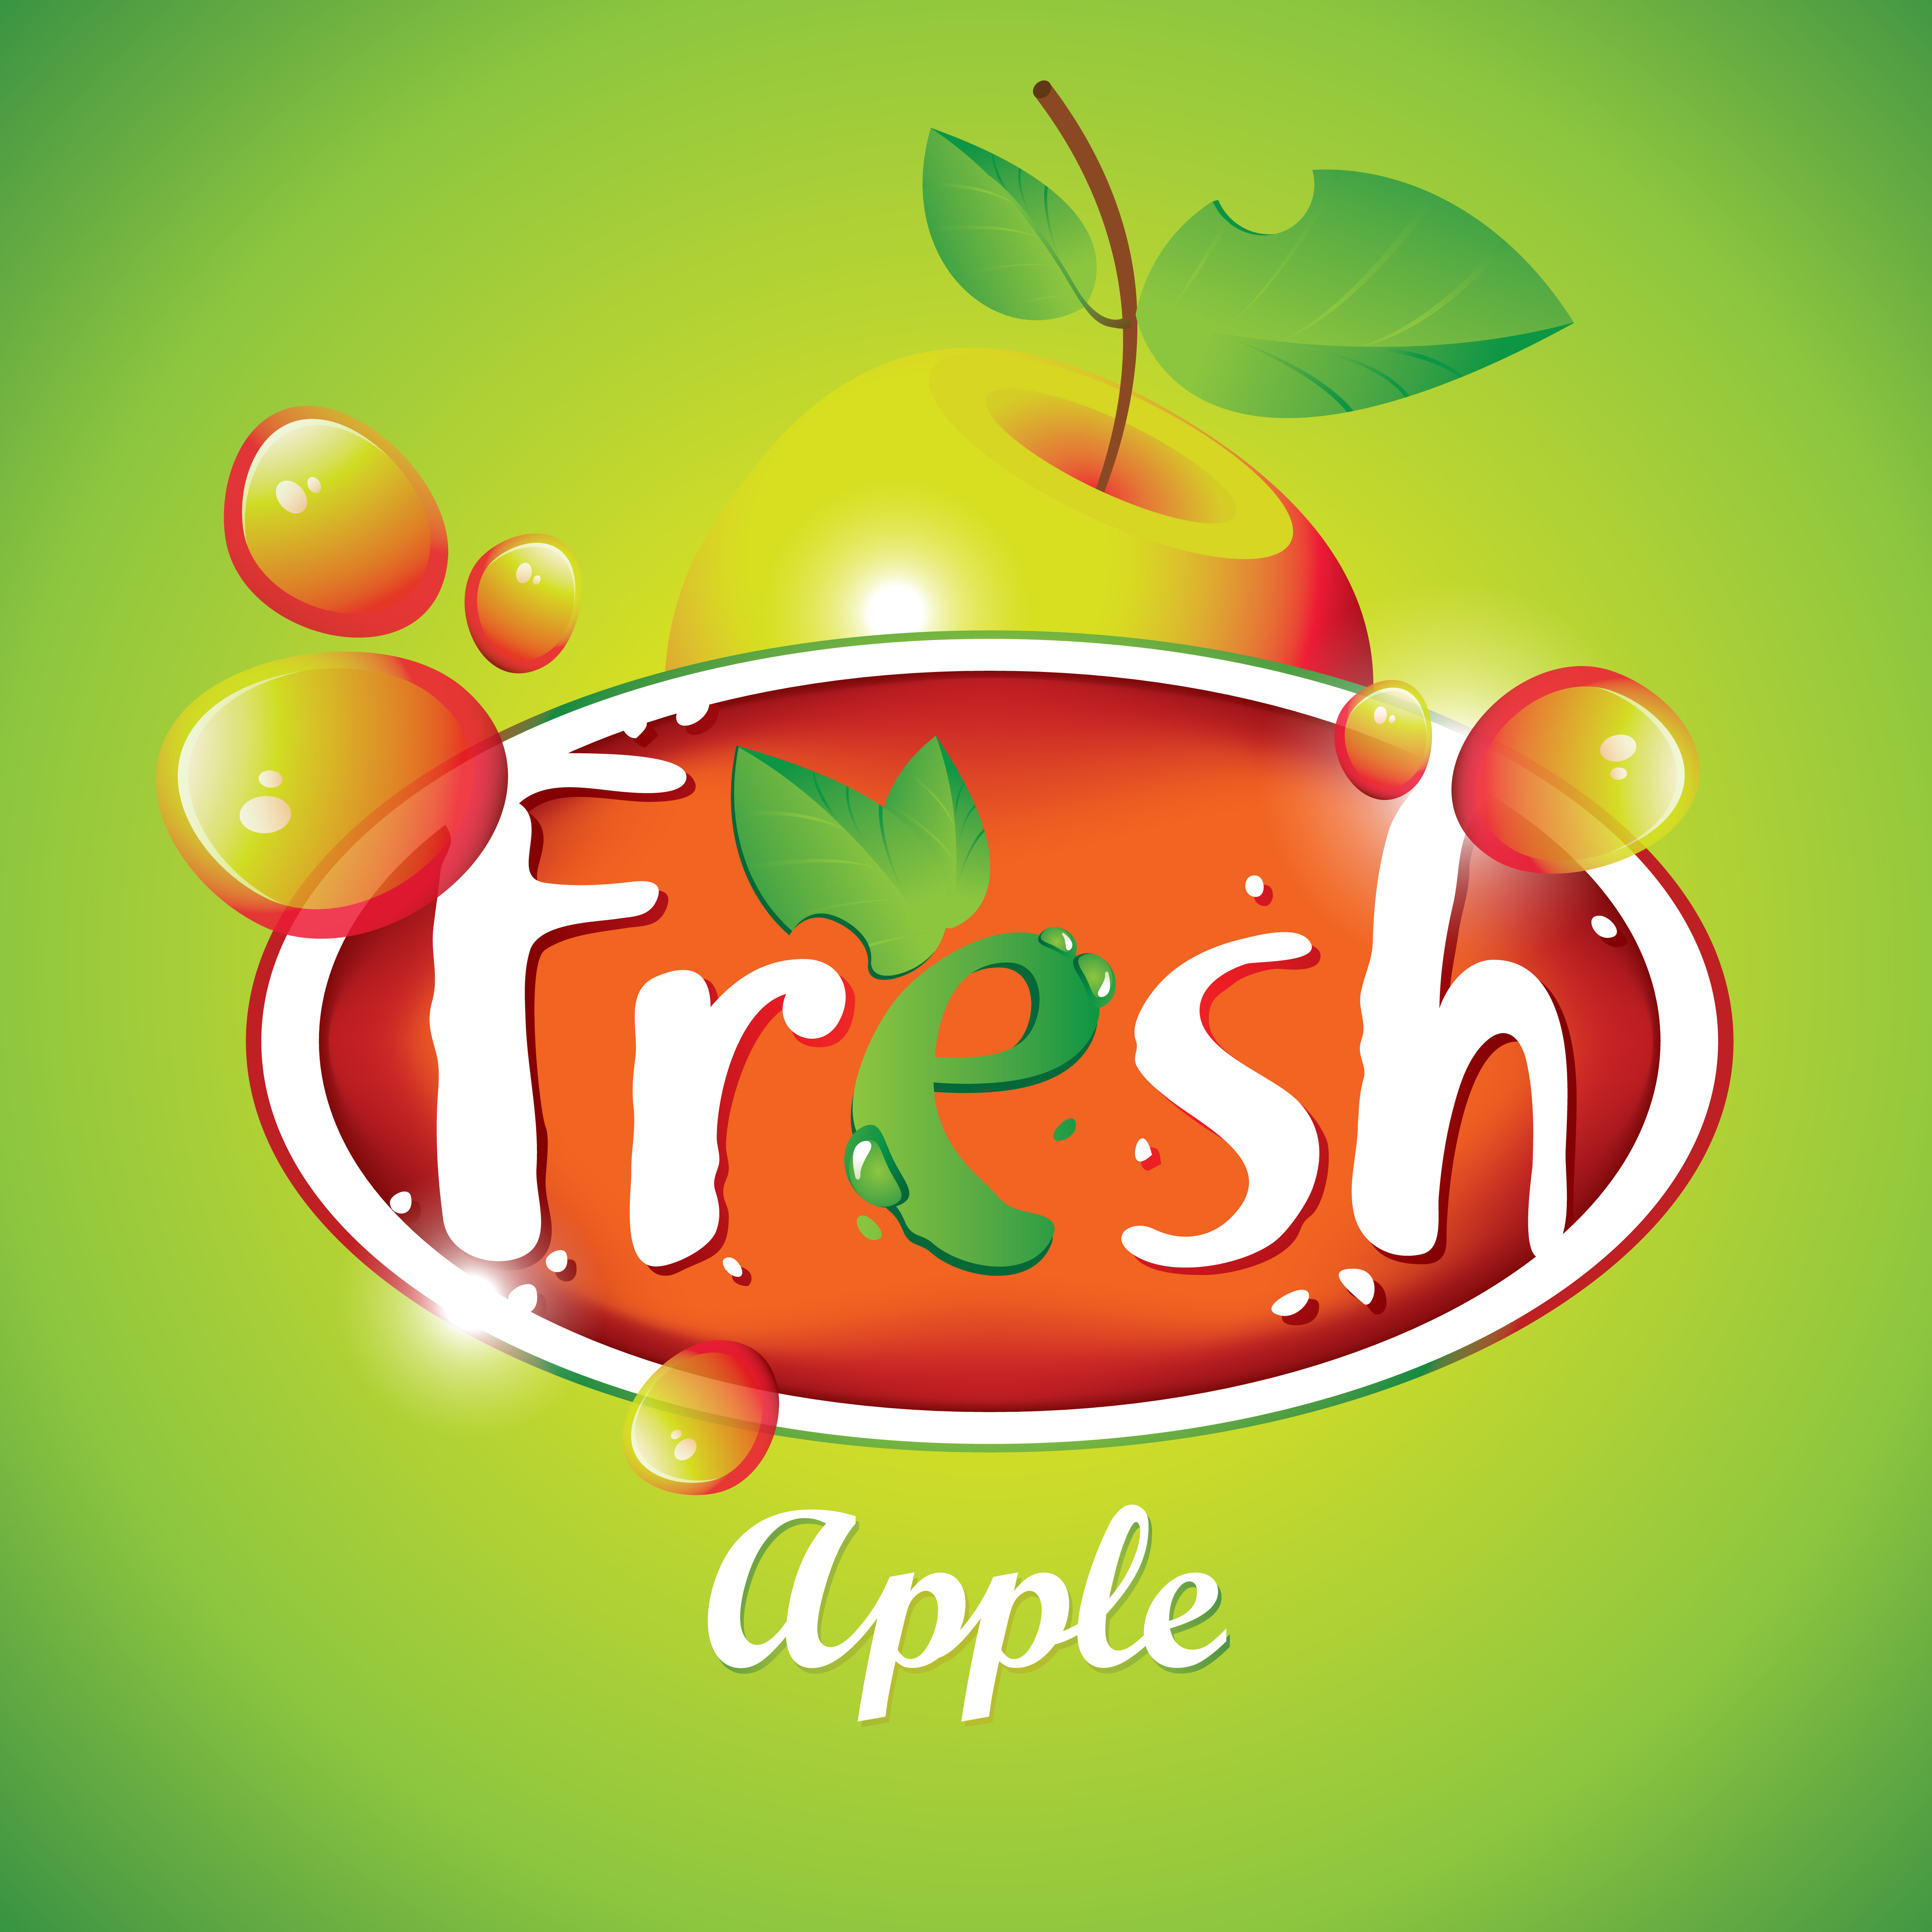 Poster design for free - Fresh Juice Poster Design Vectors Material 04